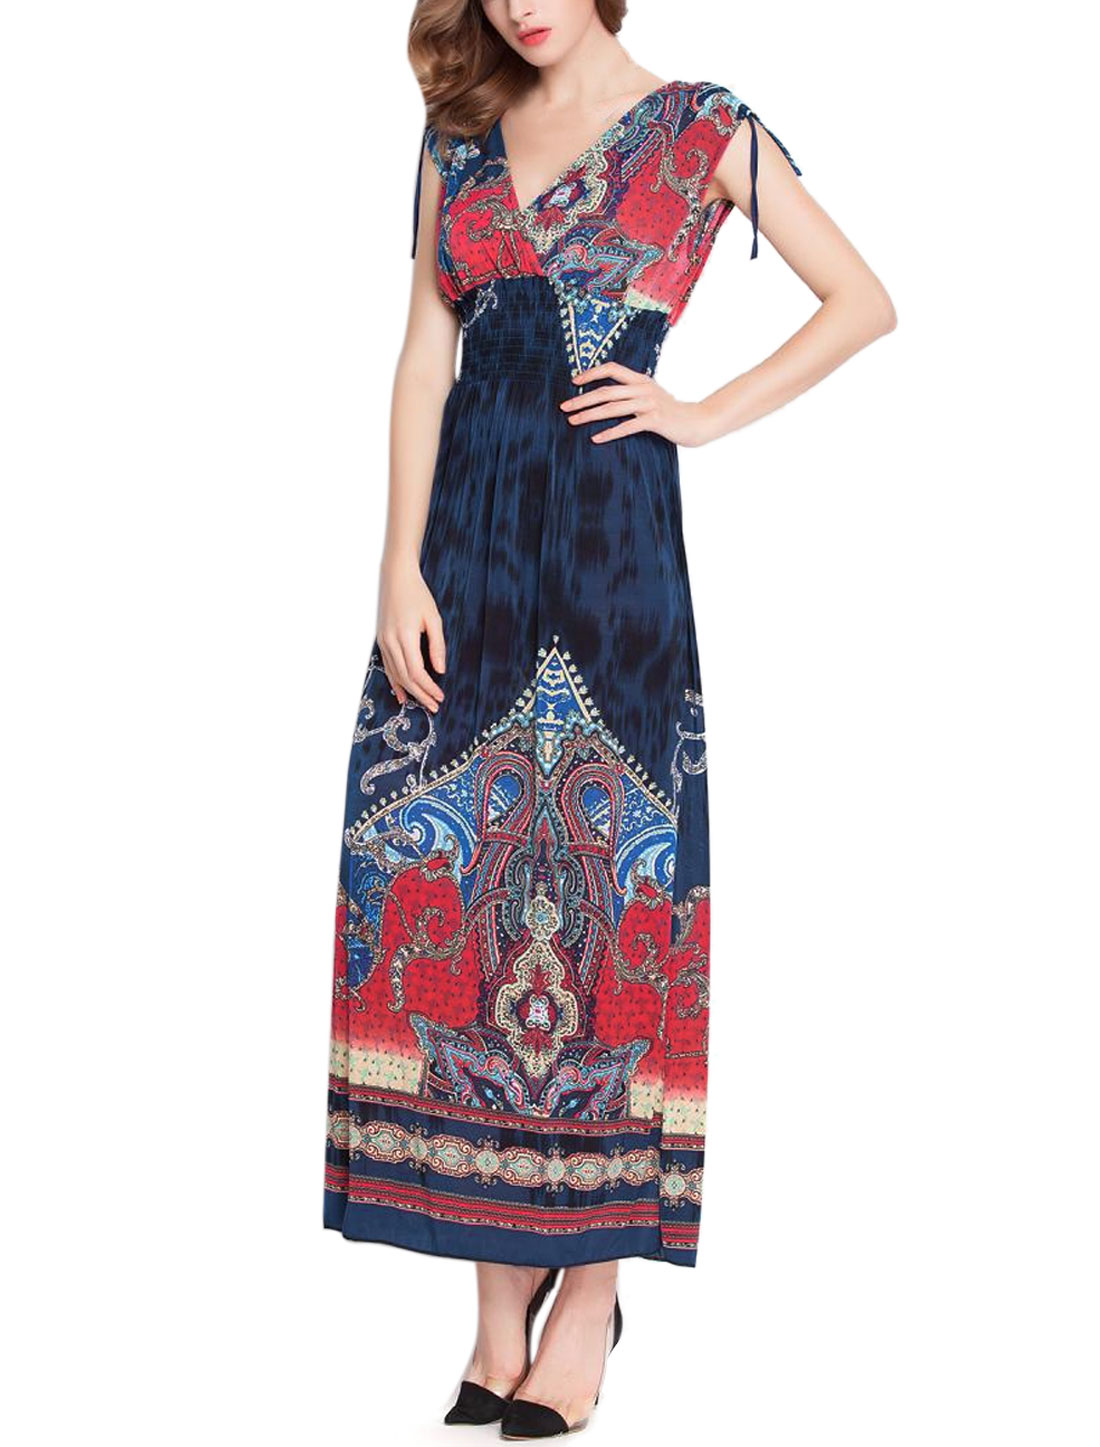 Women Sleeveless Shirred Waist Novelty Print Maxi Dress Navy Blue S